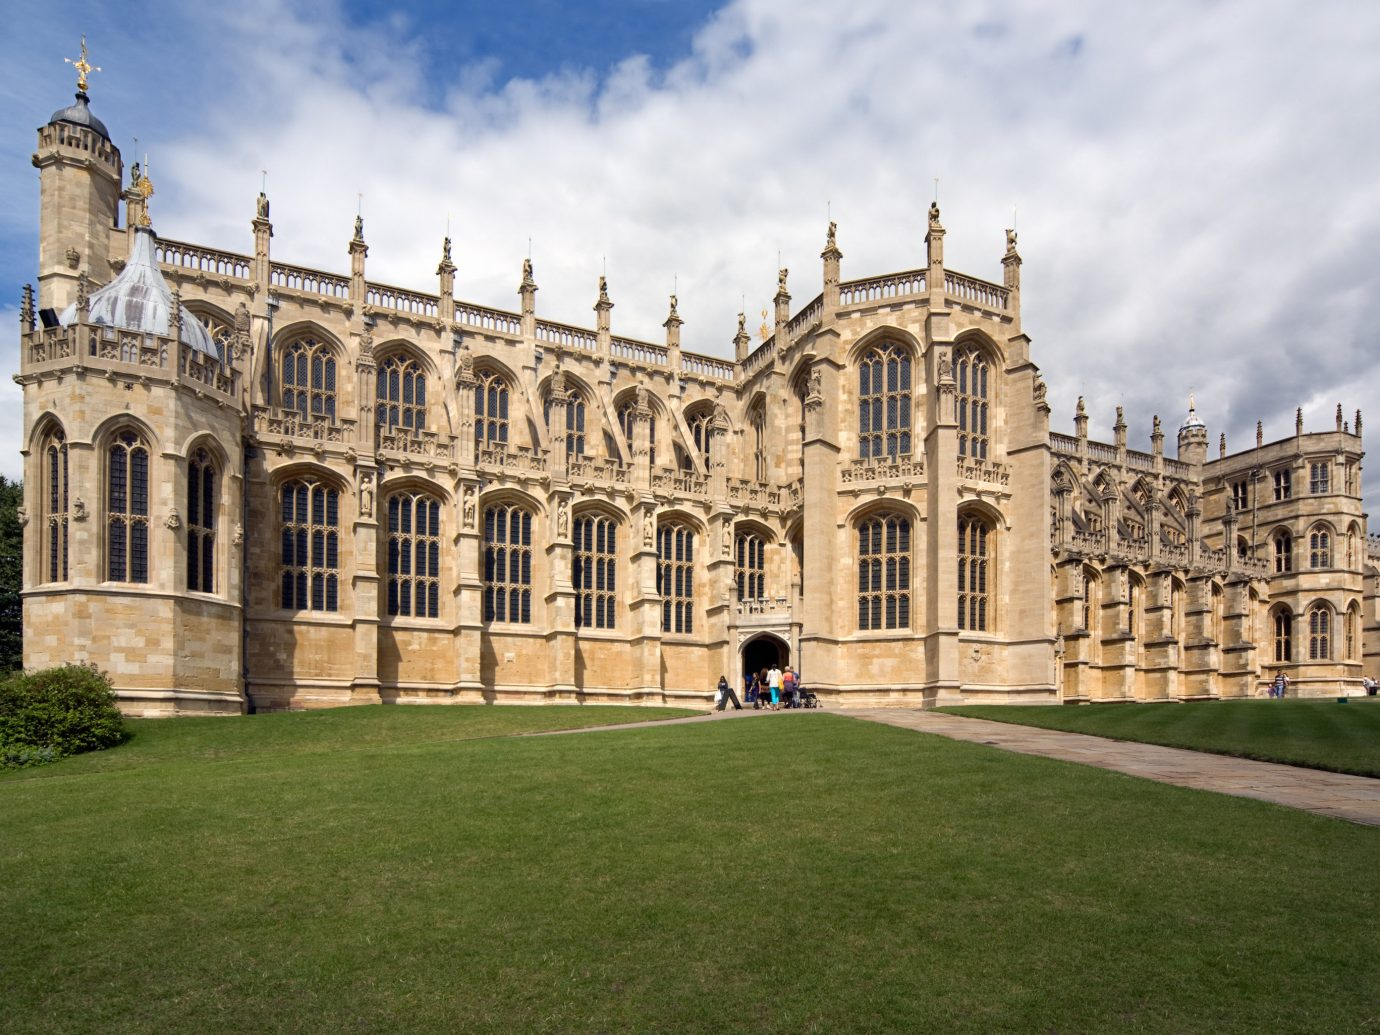 England europe London Trip Ideas landmark stately home classical architecture building medieval architecture estate sky palace grass historic site national trust for places of historic interest or natural beauty listed building château daytime mansion cathedral facade university tourist attraction tree manor house place of worship chapel window castle